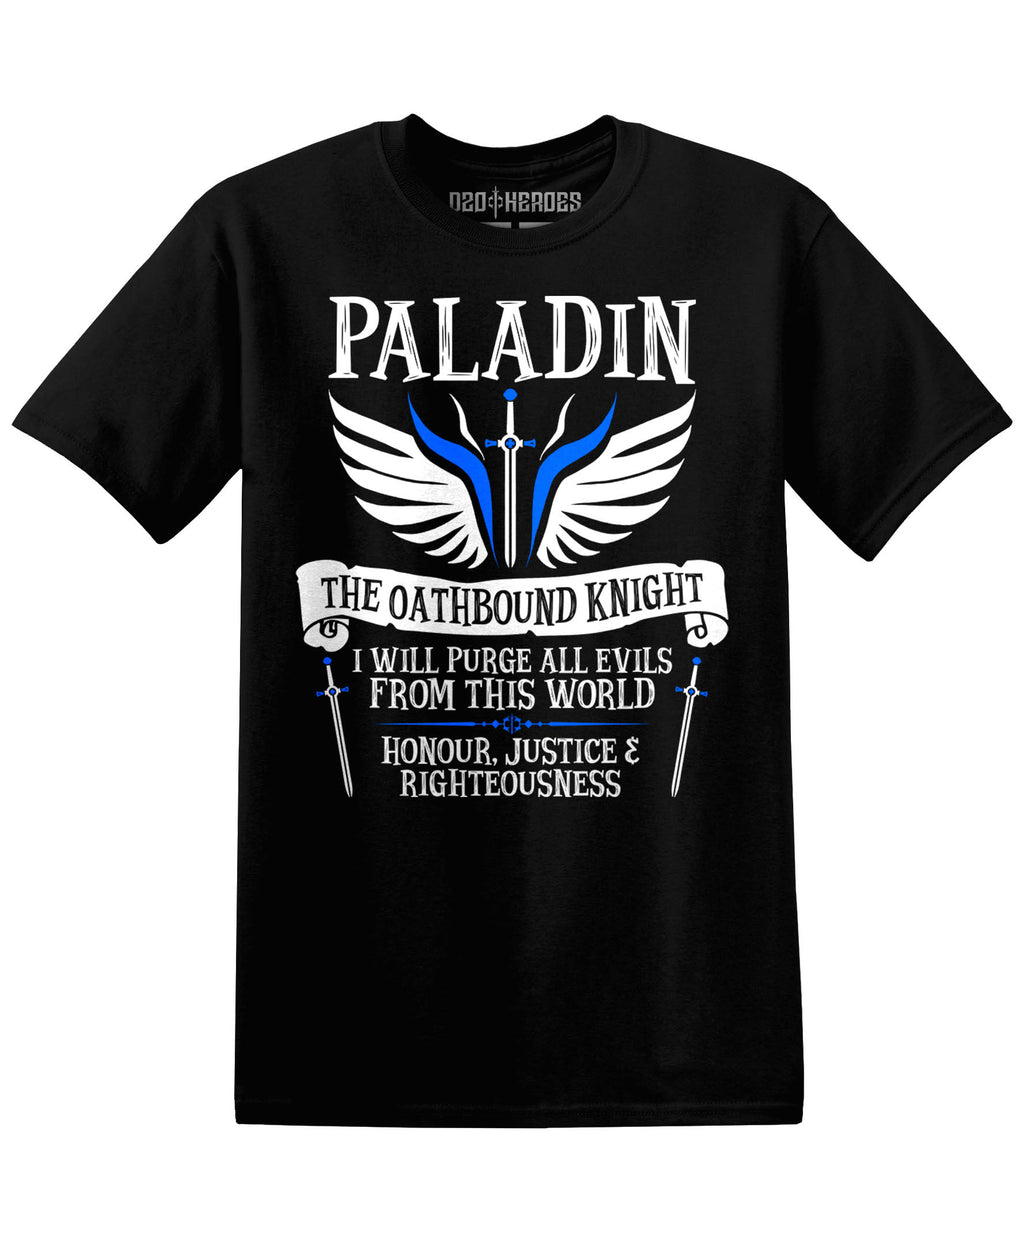 Paladin : The Oathbound Knight - T-Shirt - D20 Heroes / Dungeons and Dragons and Fantasy Clothing and Merchandise